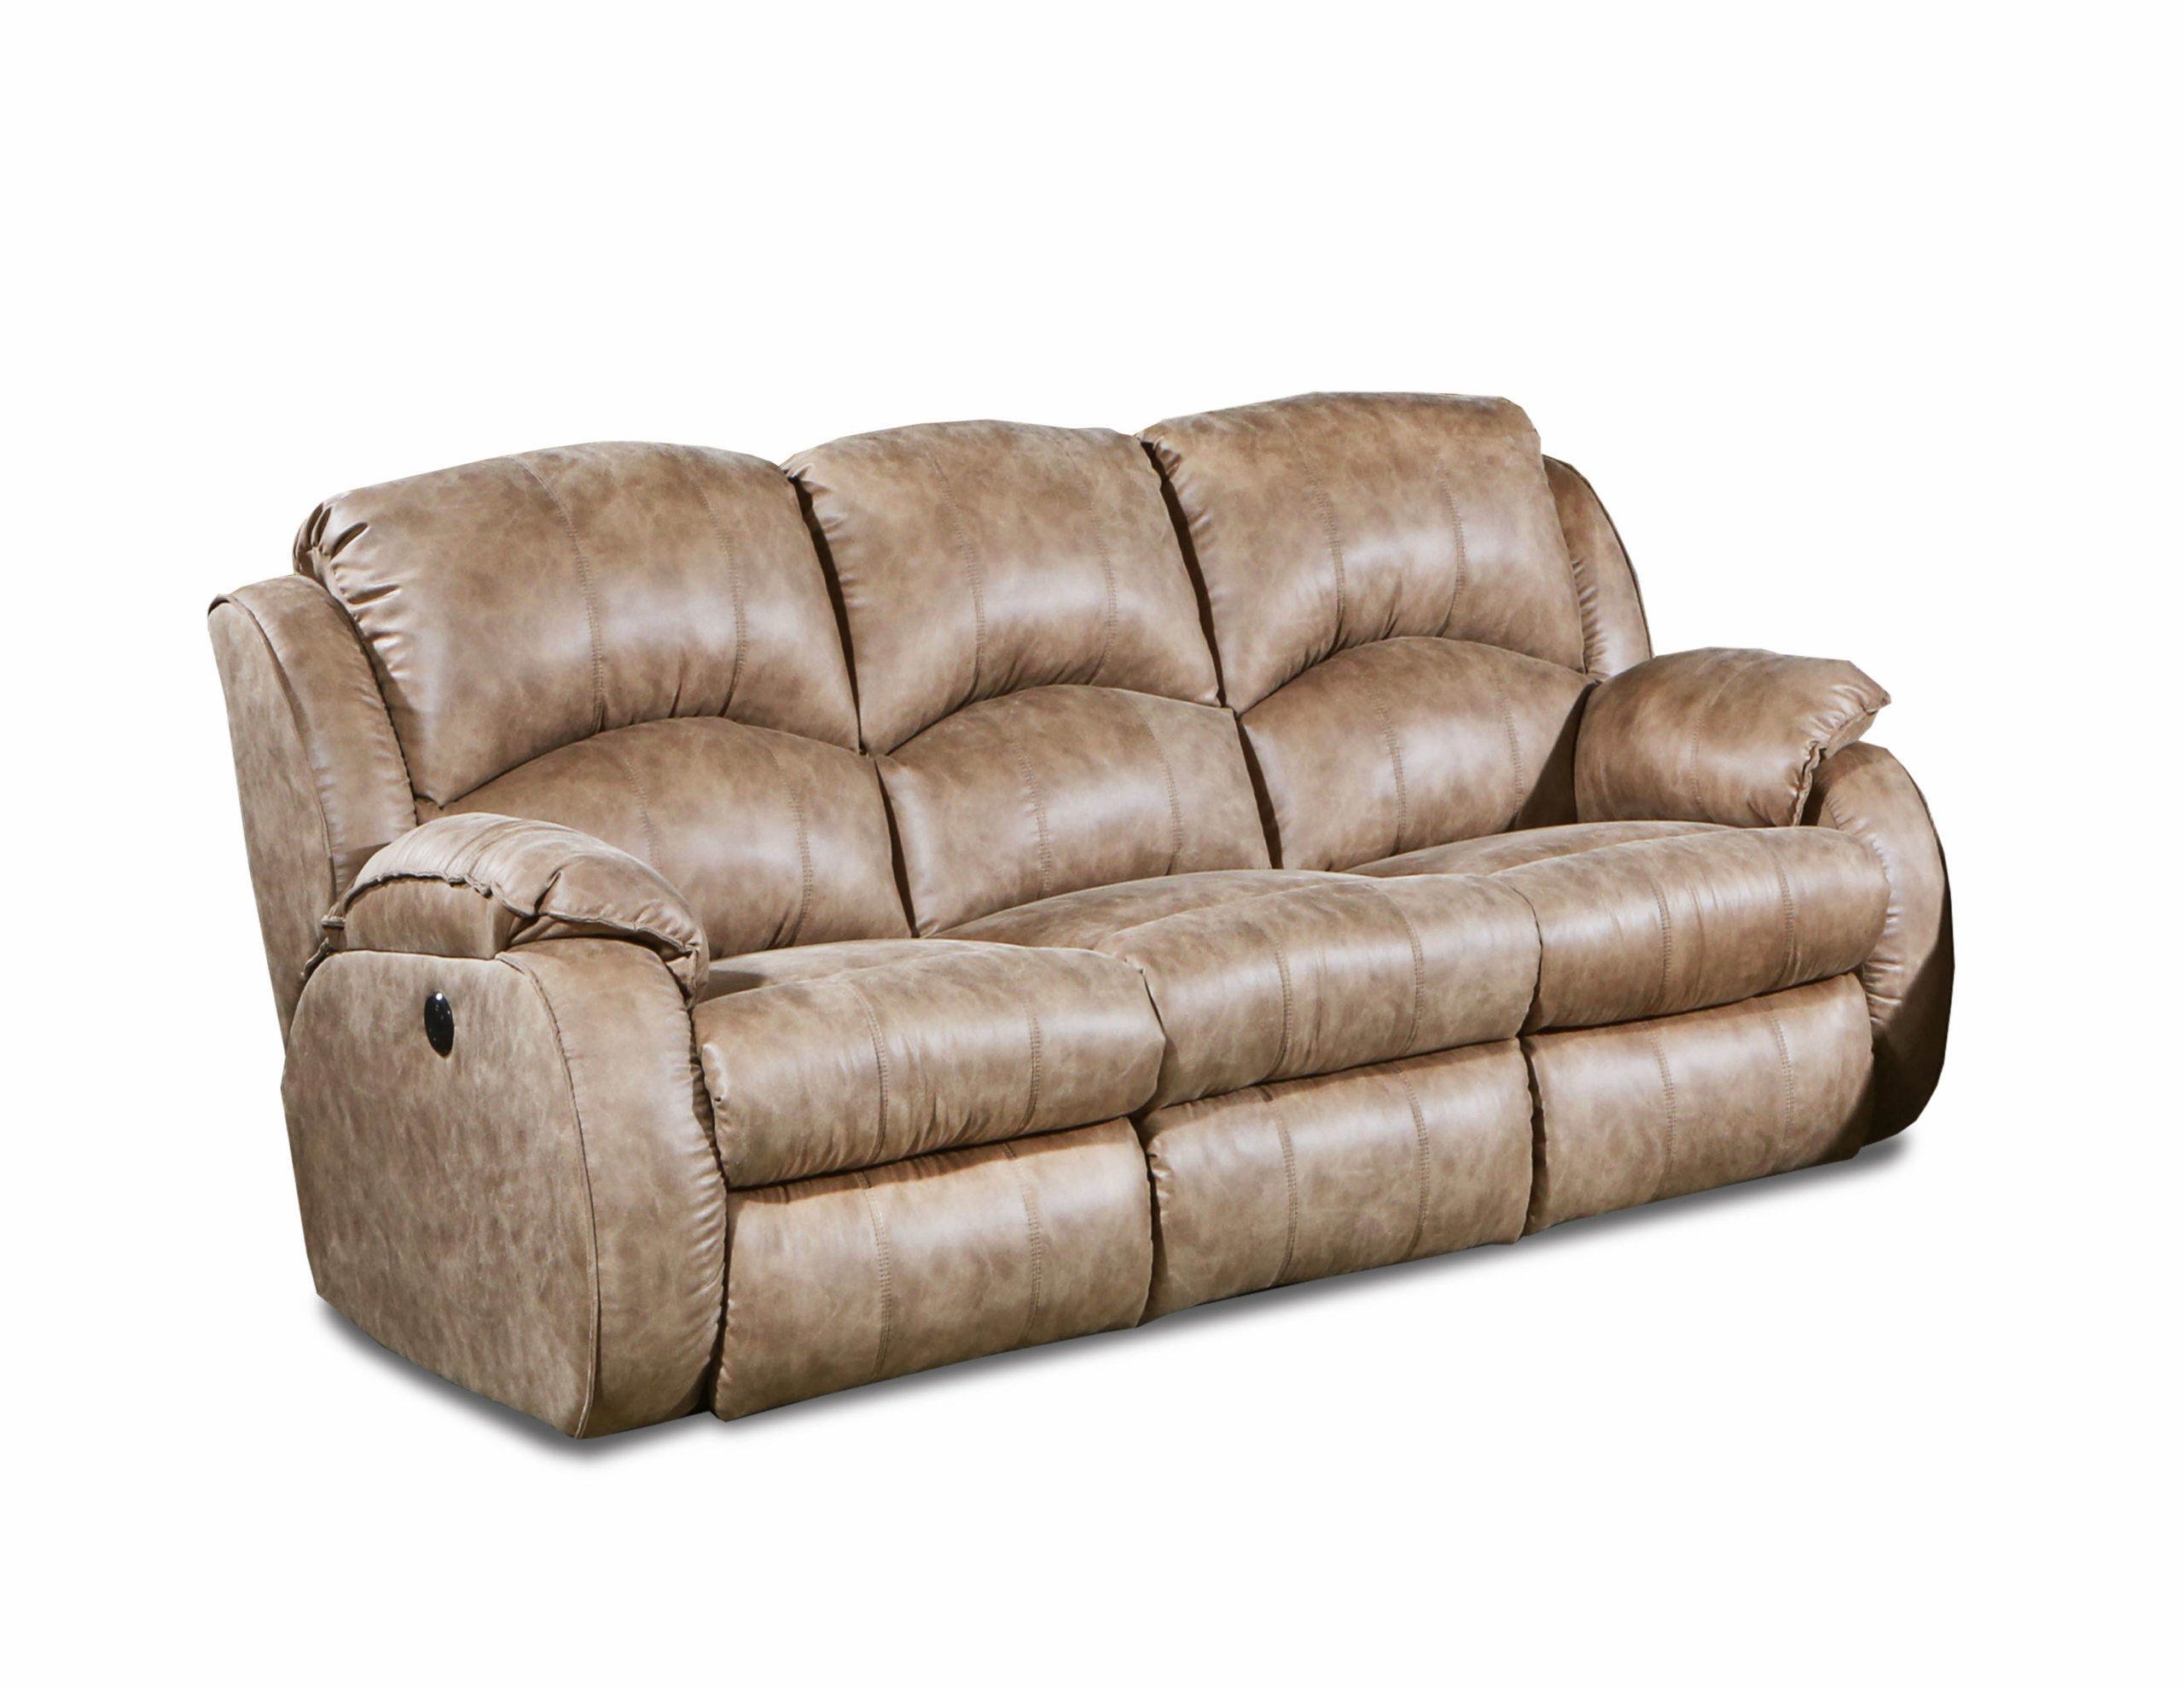 705-61p-cagney-in-173-16-river-run-vintage-sofa-swp-jw-scaled